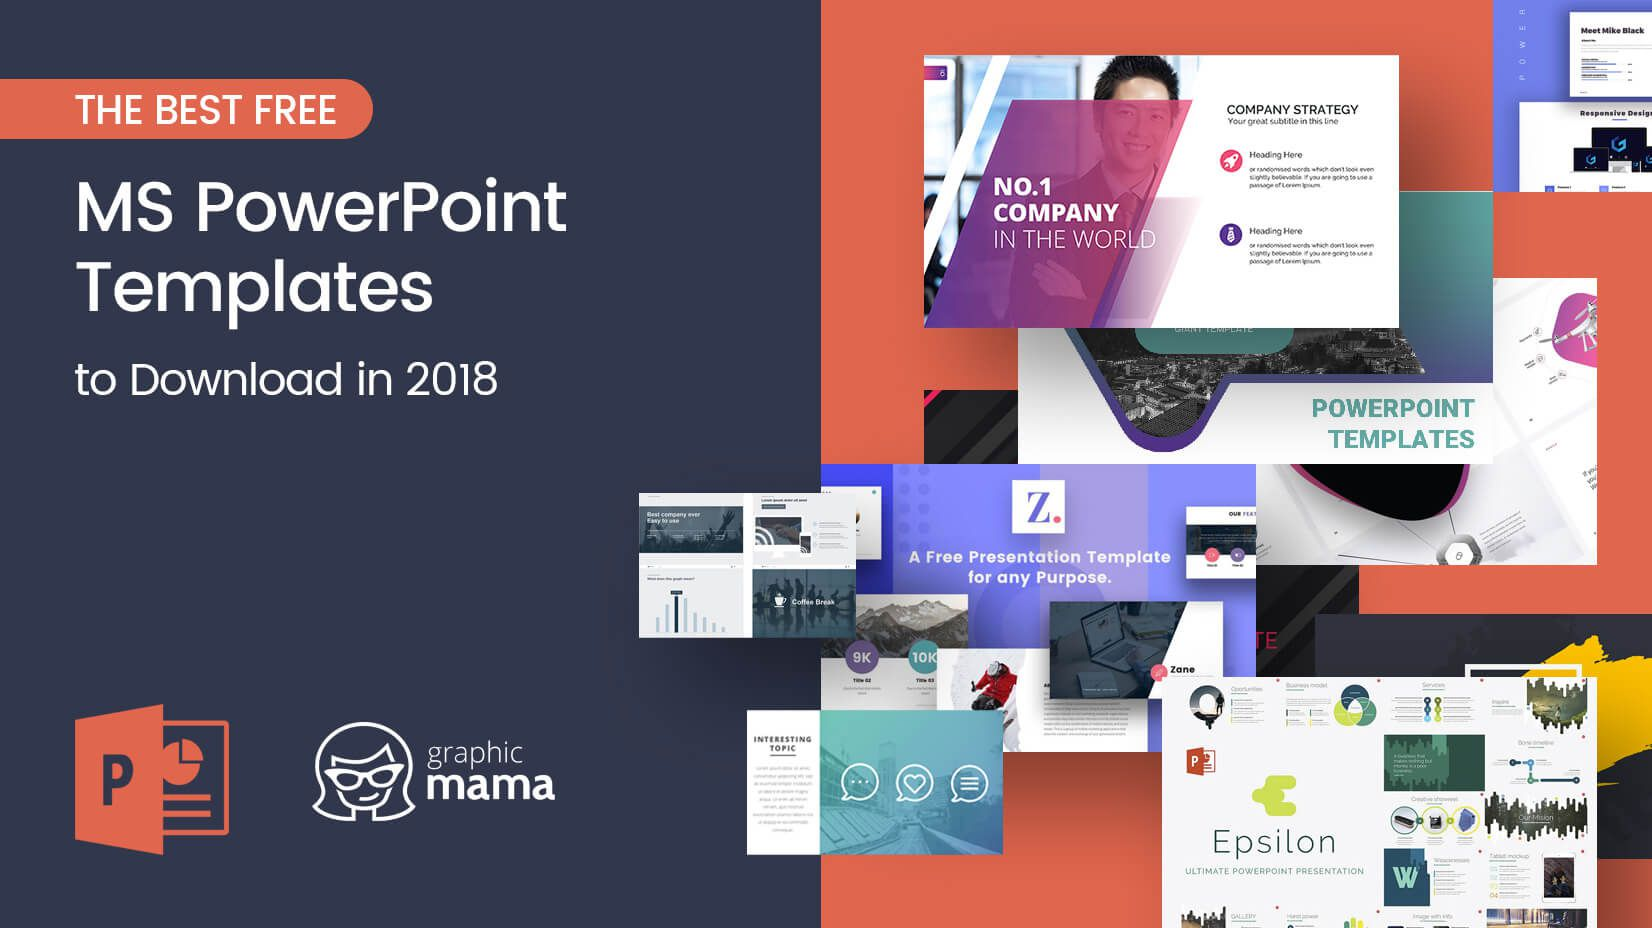 009 Stunning Free Powerpoint Presentation Template Inspiration  Templates 22 Slide For The Perfect Busines Strategy Download EngineeringFull